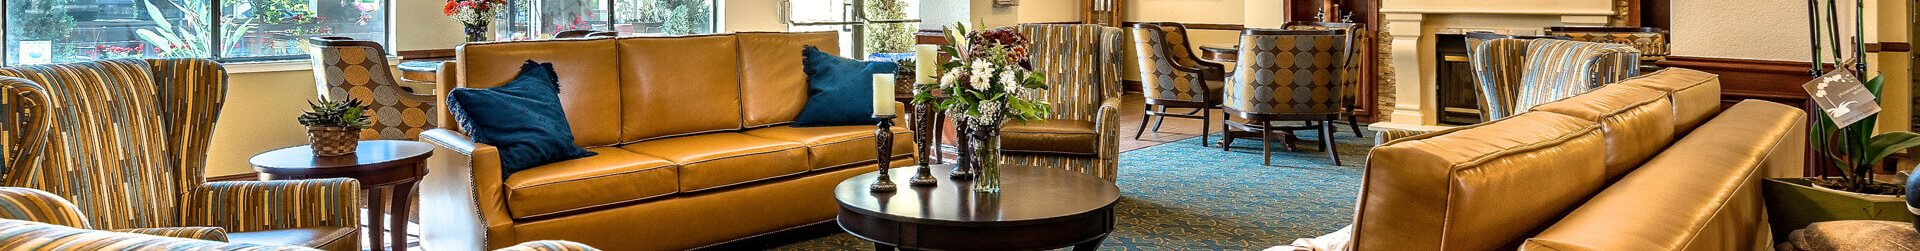 Welcoming Lobby at Pacifica Senior Living San Leandro, California